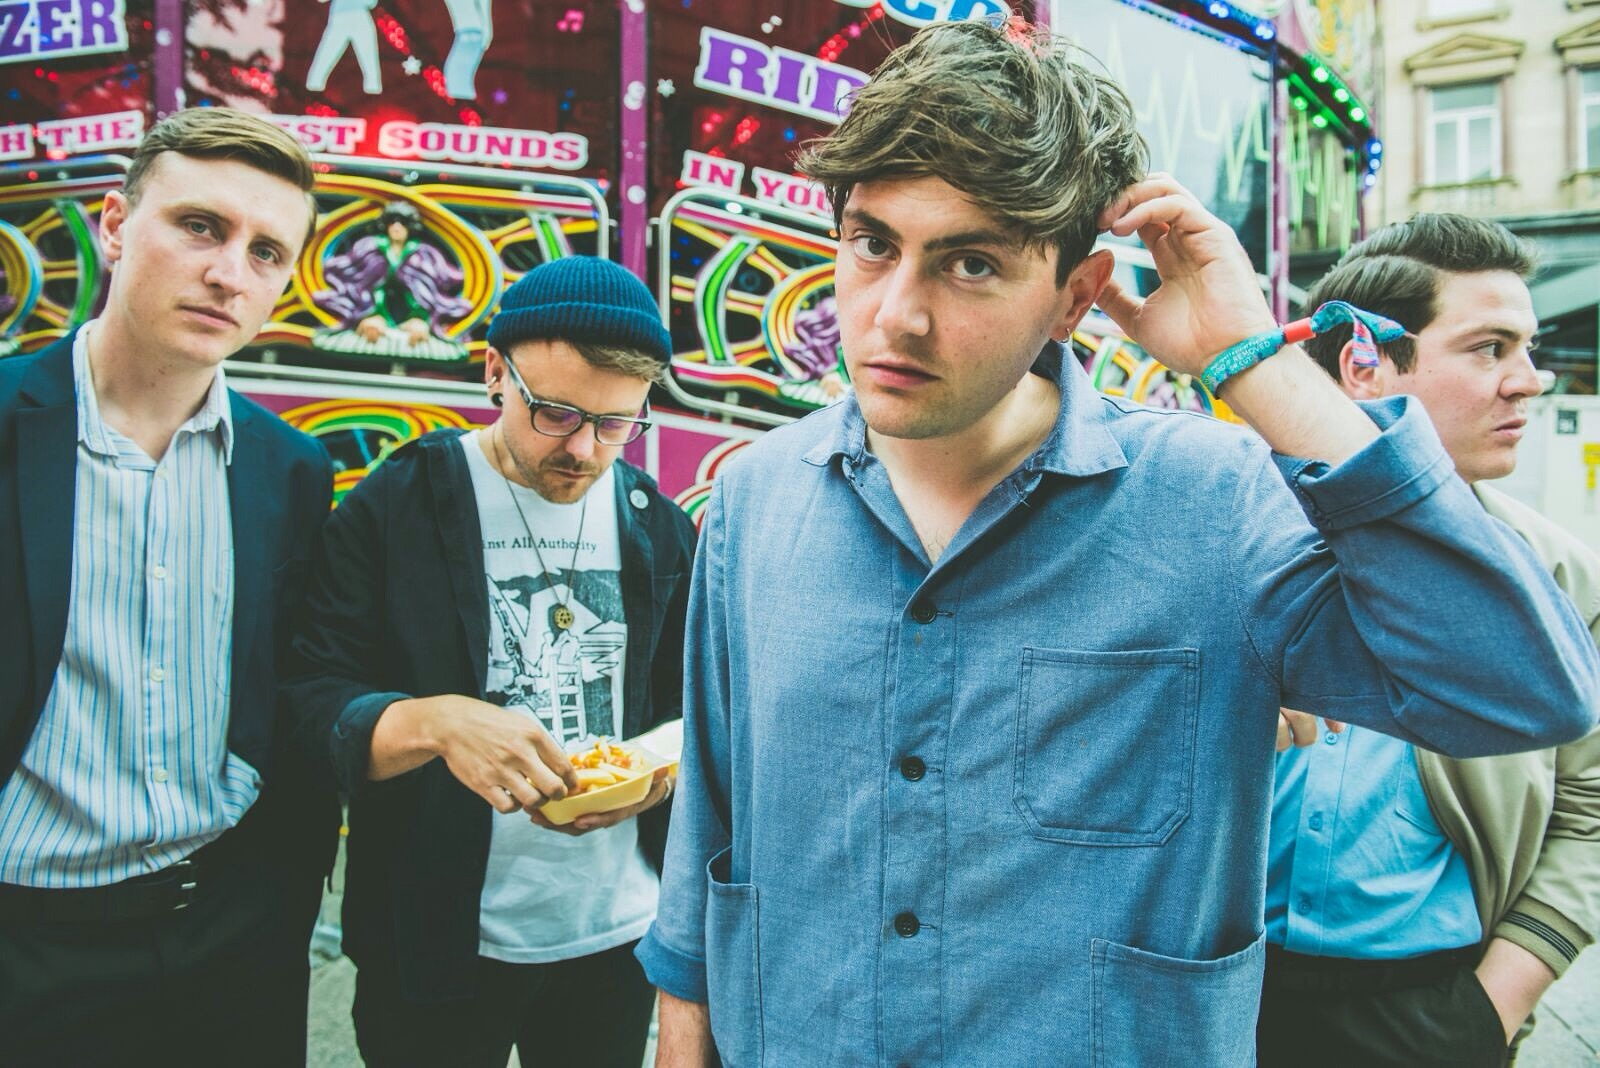 Take a ride with LIFE in their 'Sugar God' video | DIY